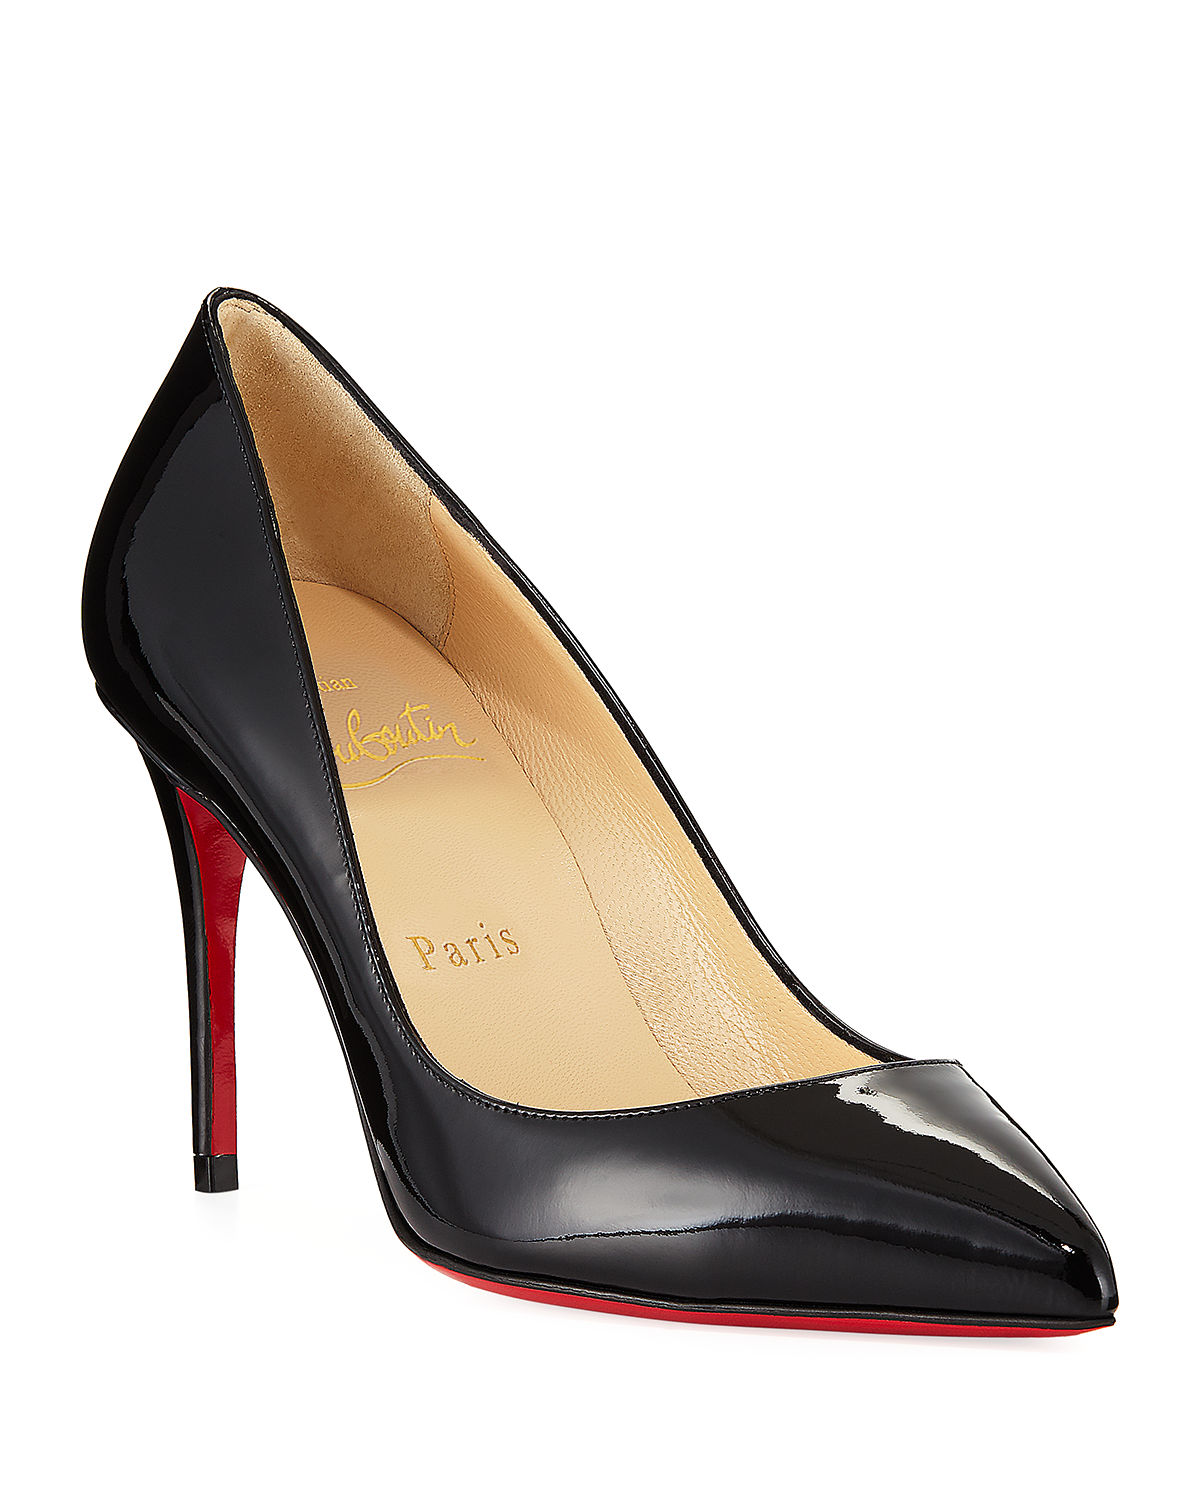 c07dff9739e Christian Louboutin Pigalle Follies 85mm Patent Red Sole Pump ...